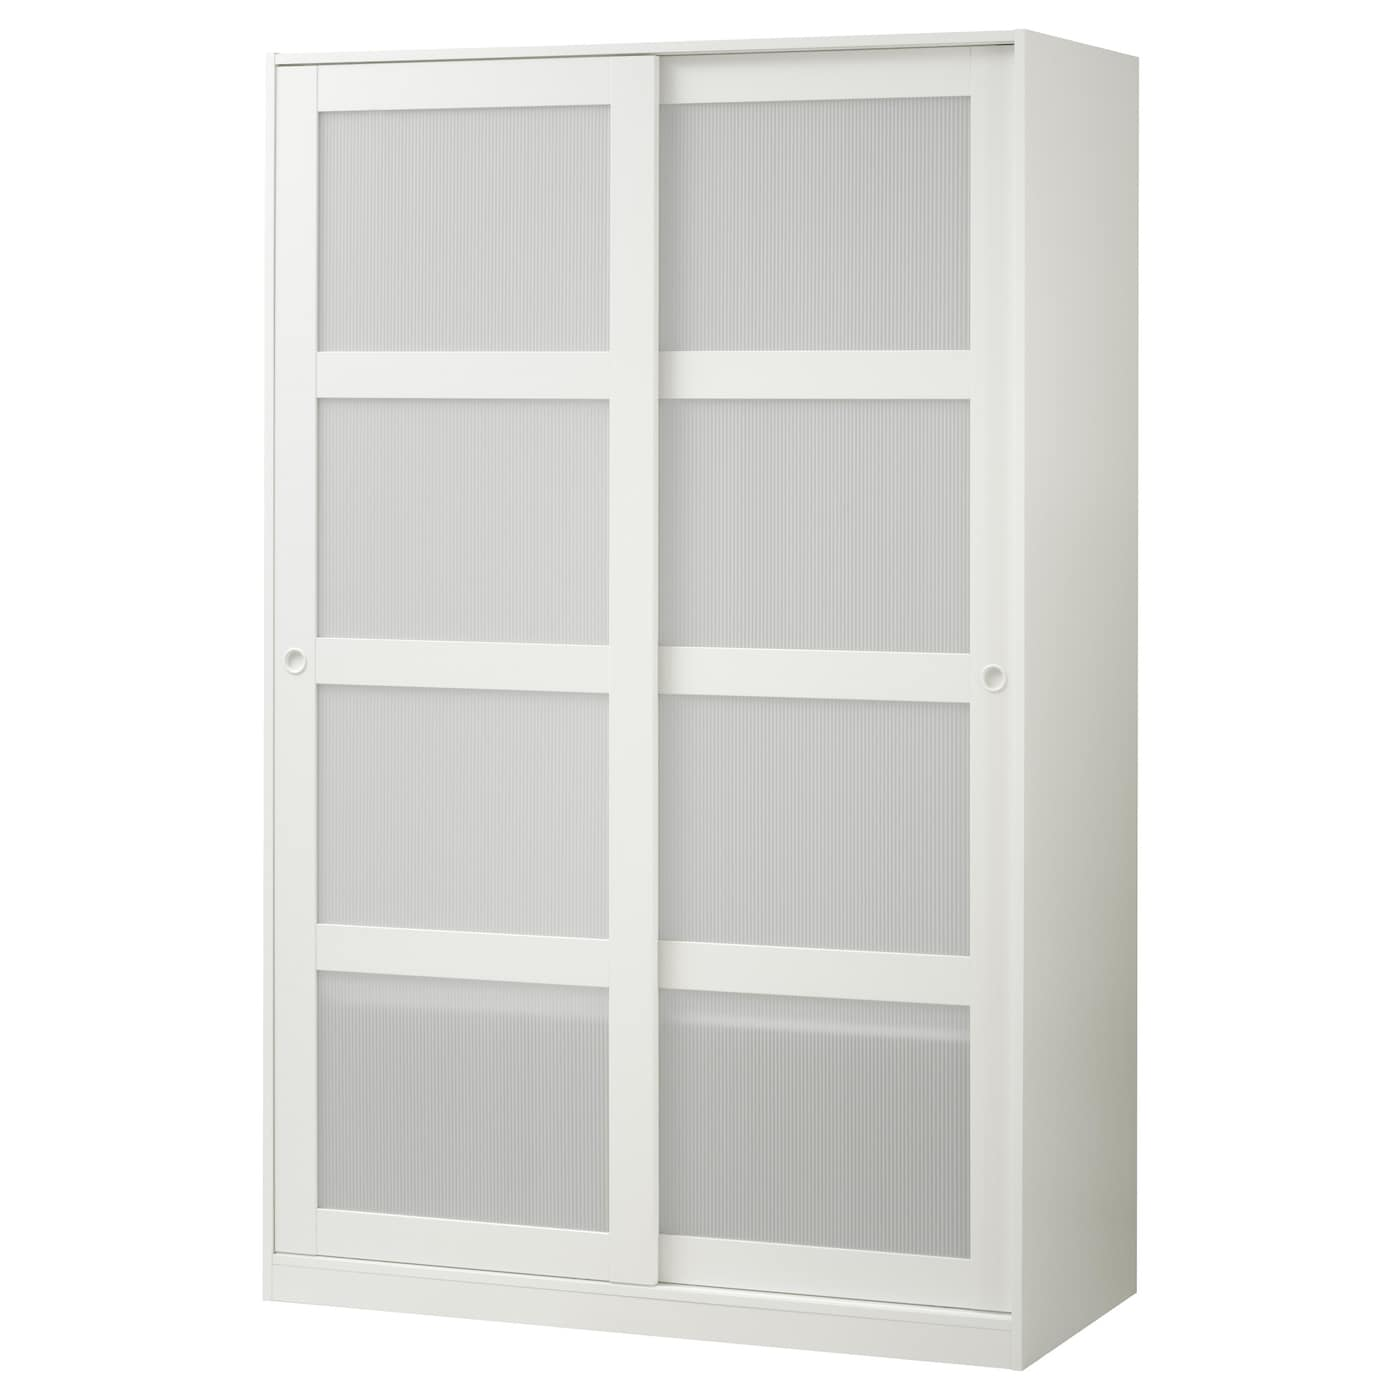 products en ikea ensure wardrobes free wardrobe gb doors adjustable standing the hinges that aneboda hang white straight